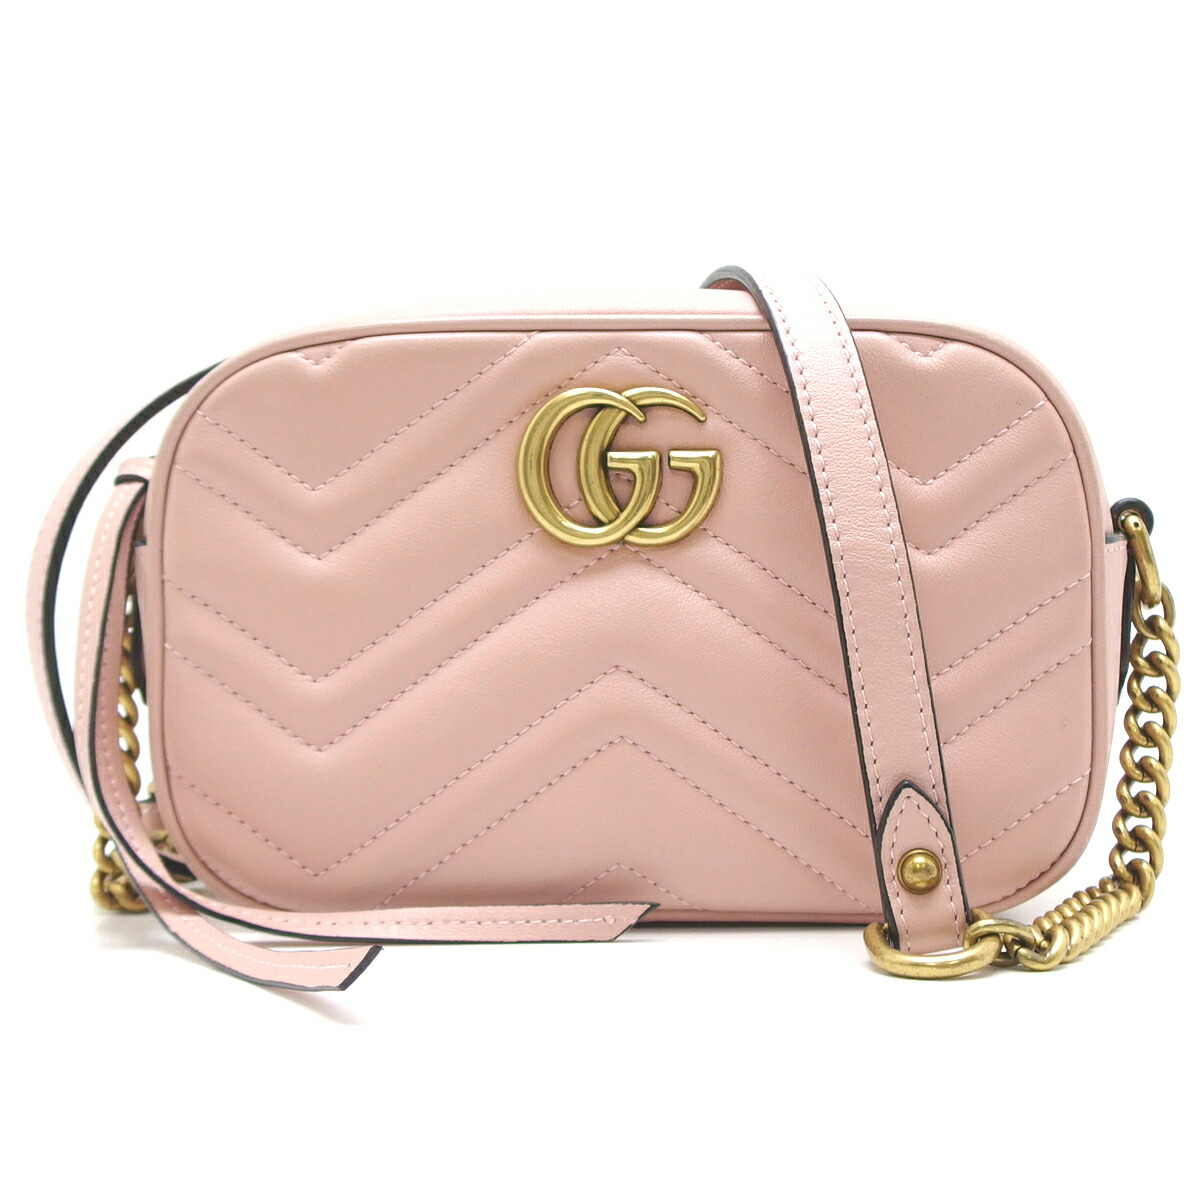 151fd5d50e4 Detalles acerca de Auth Gucci Light Pink GG Marmont Matelasse Mini Shoulder  Bag 448065 (DH44579)